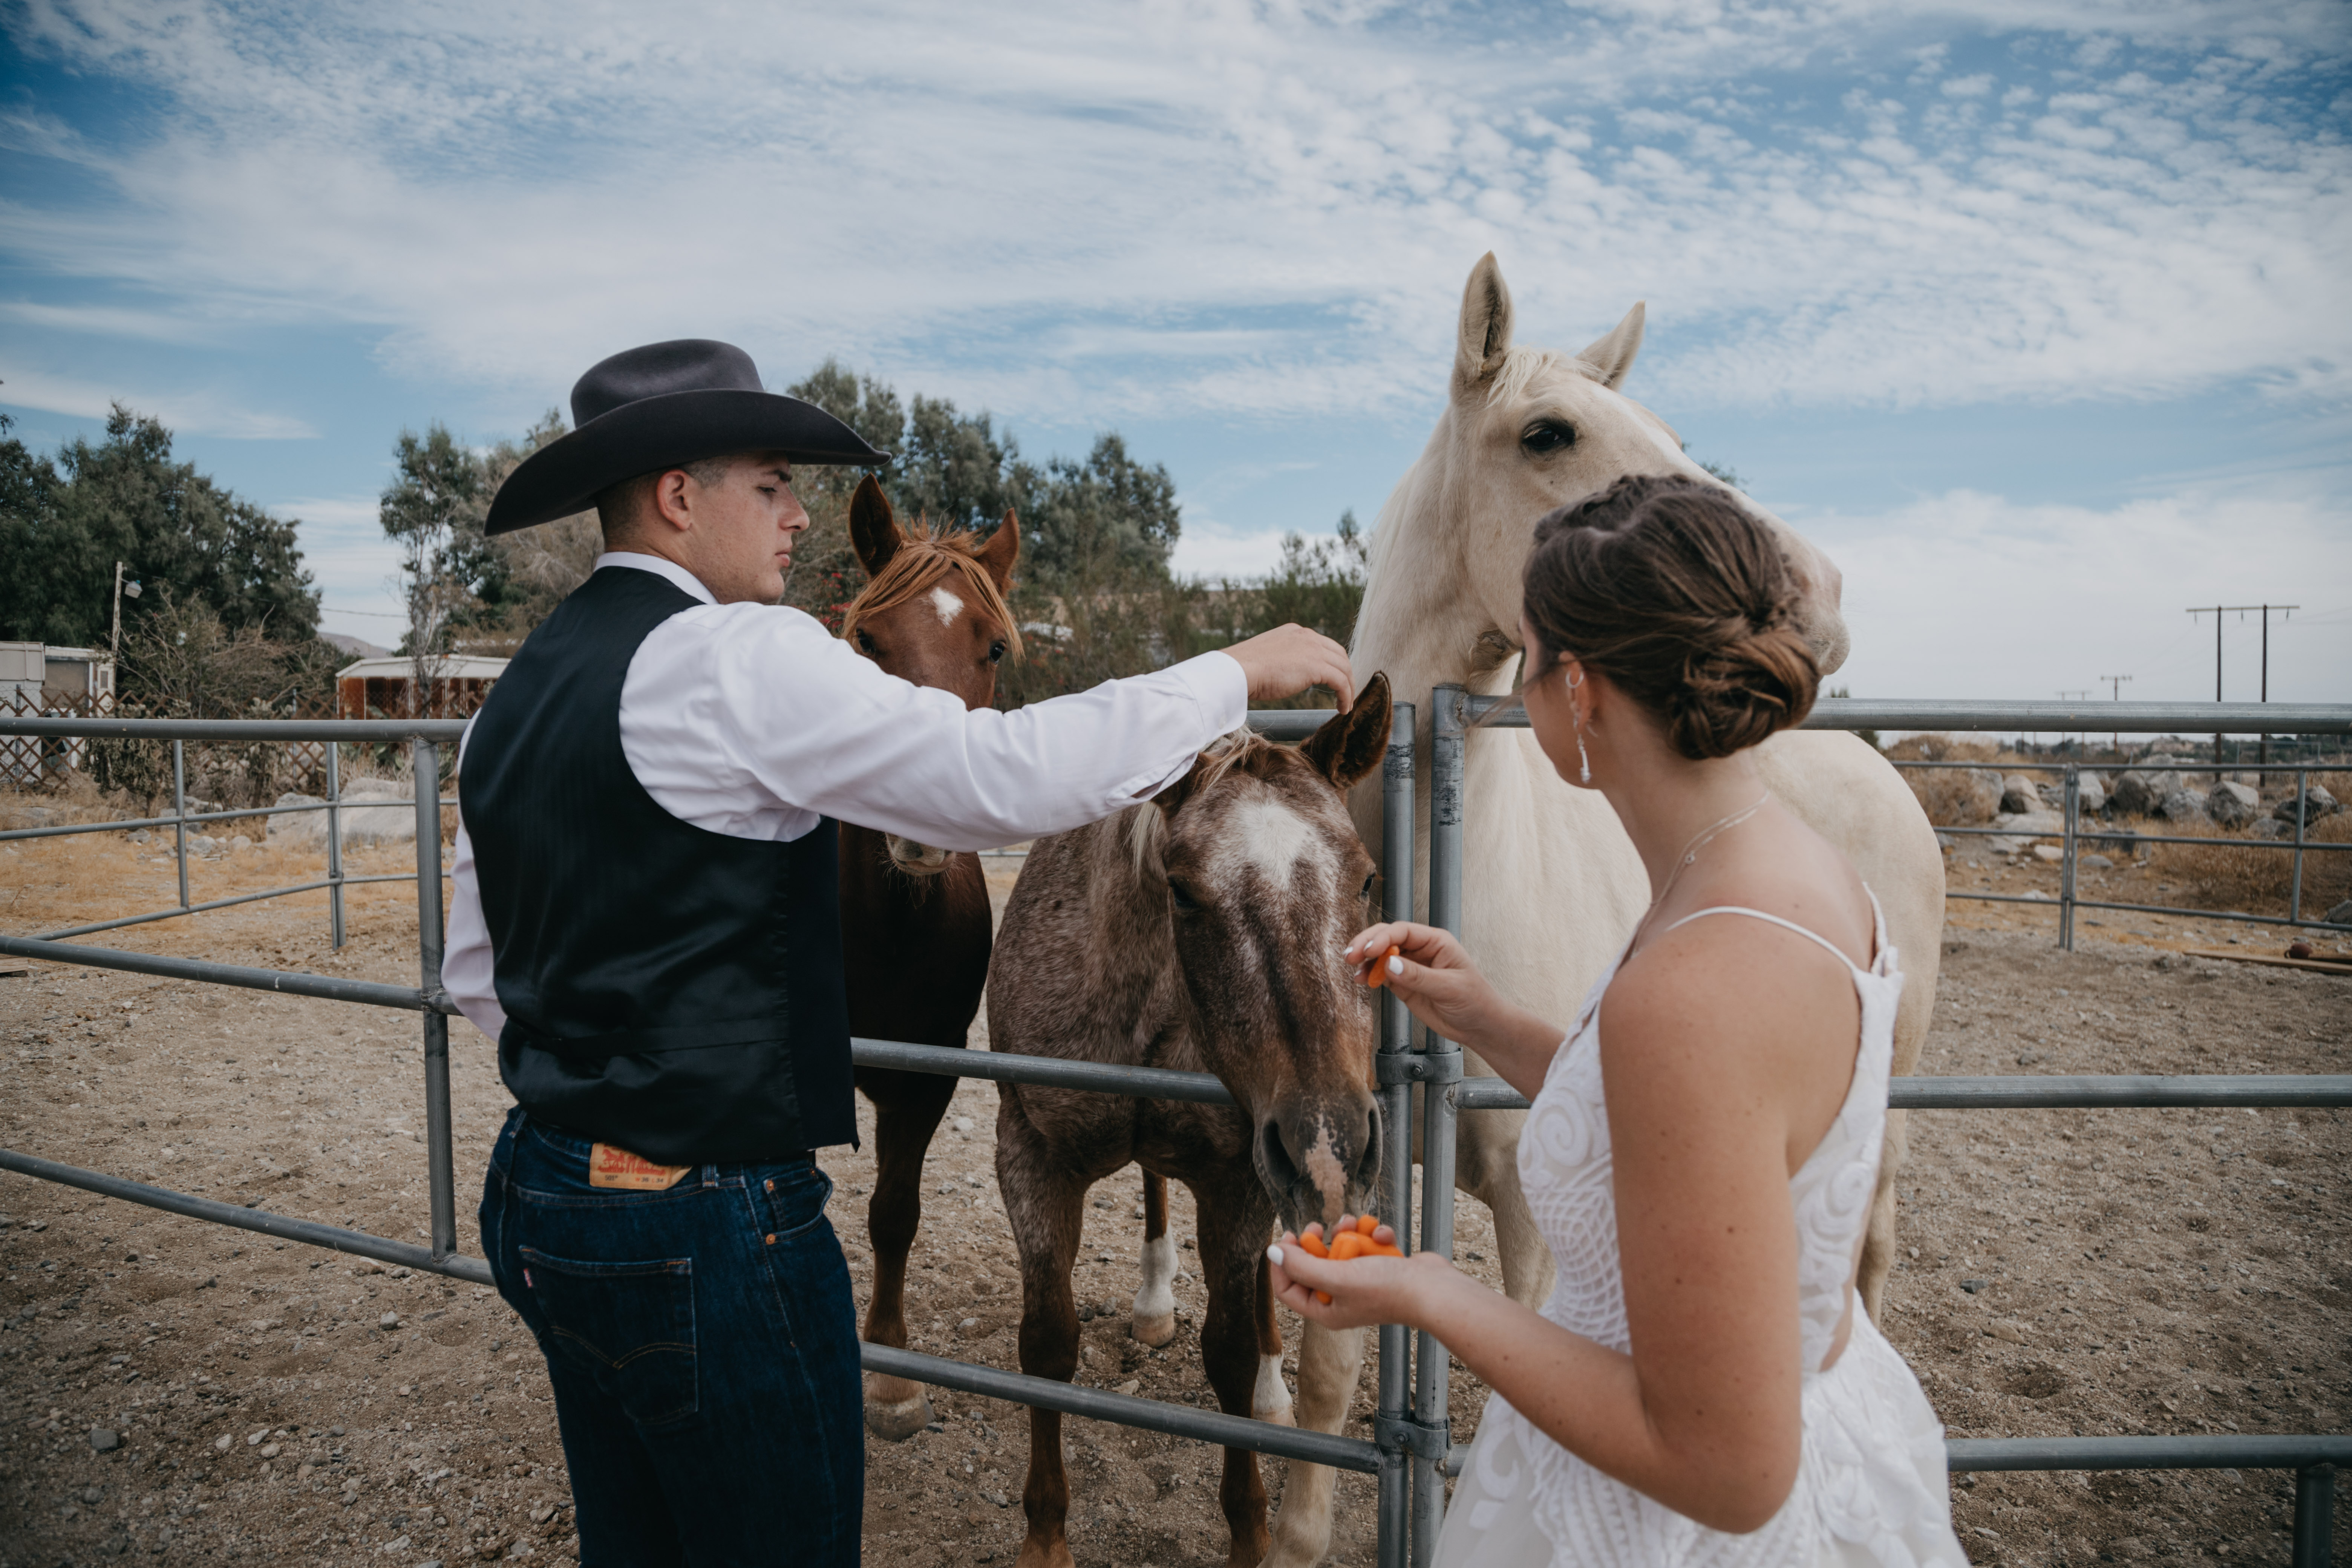 Bride and groom portrait with horses, image by Fatima Elreda Photo